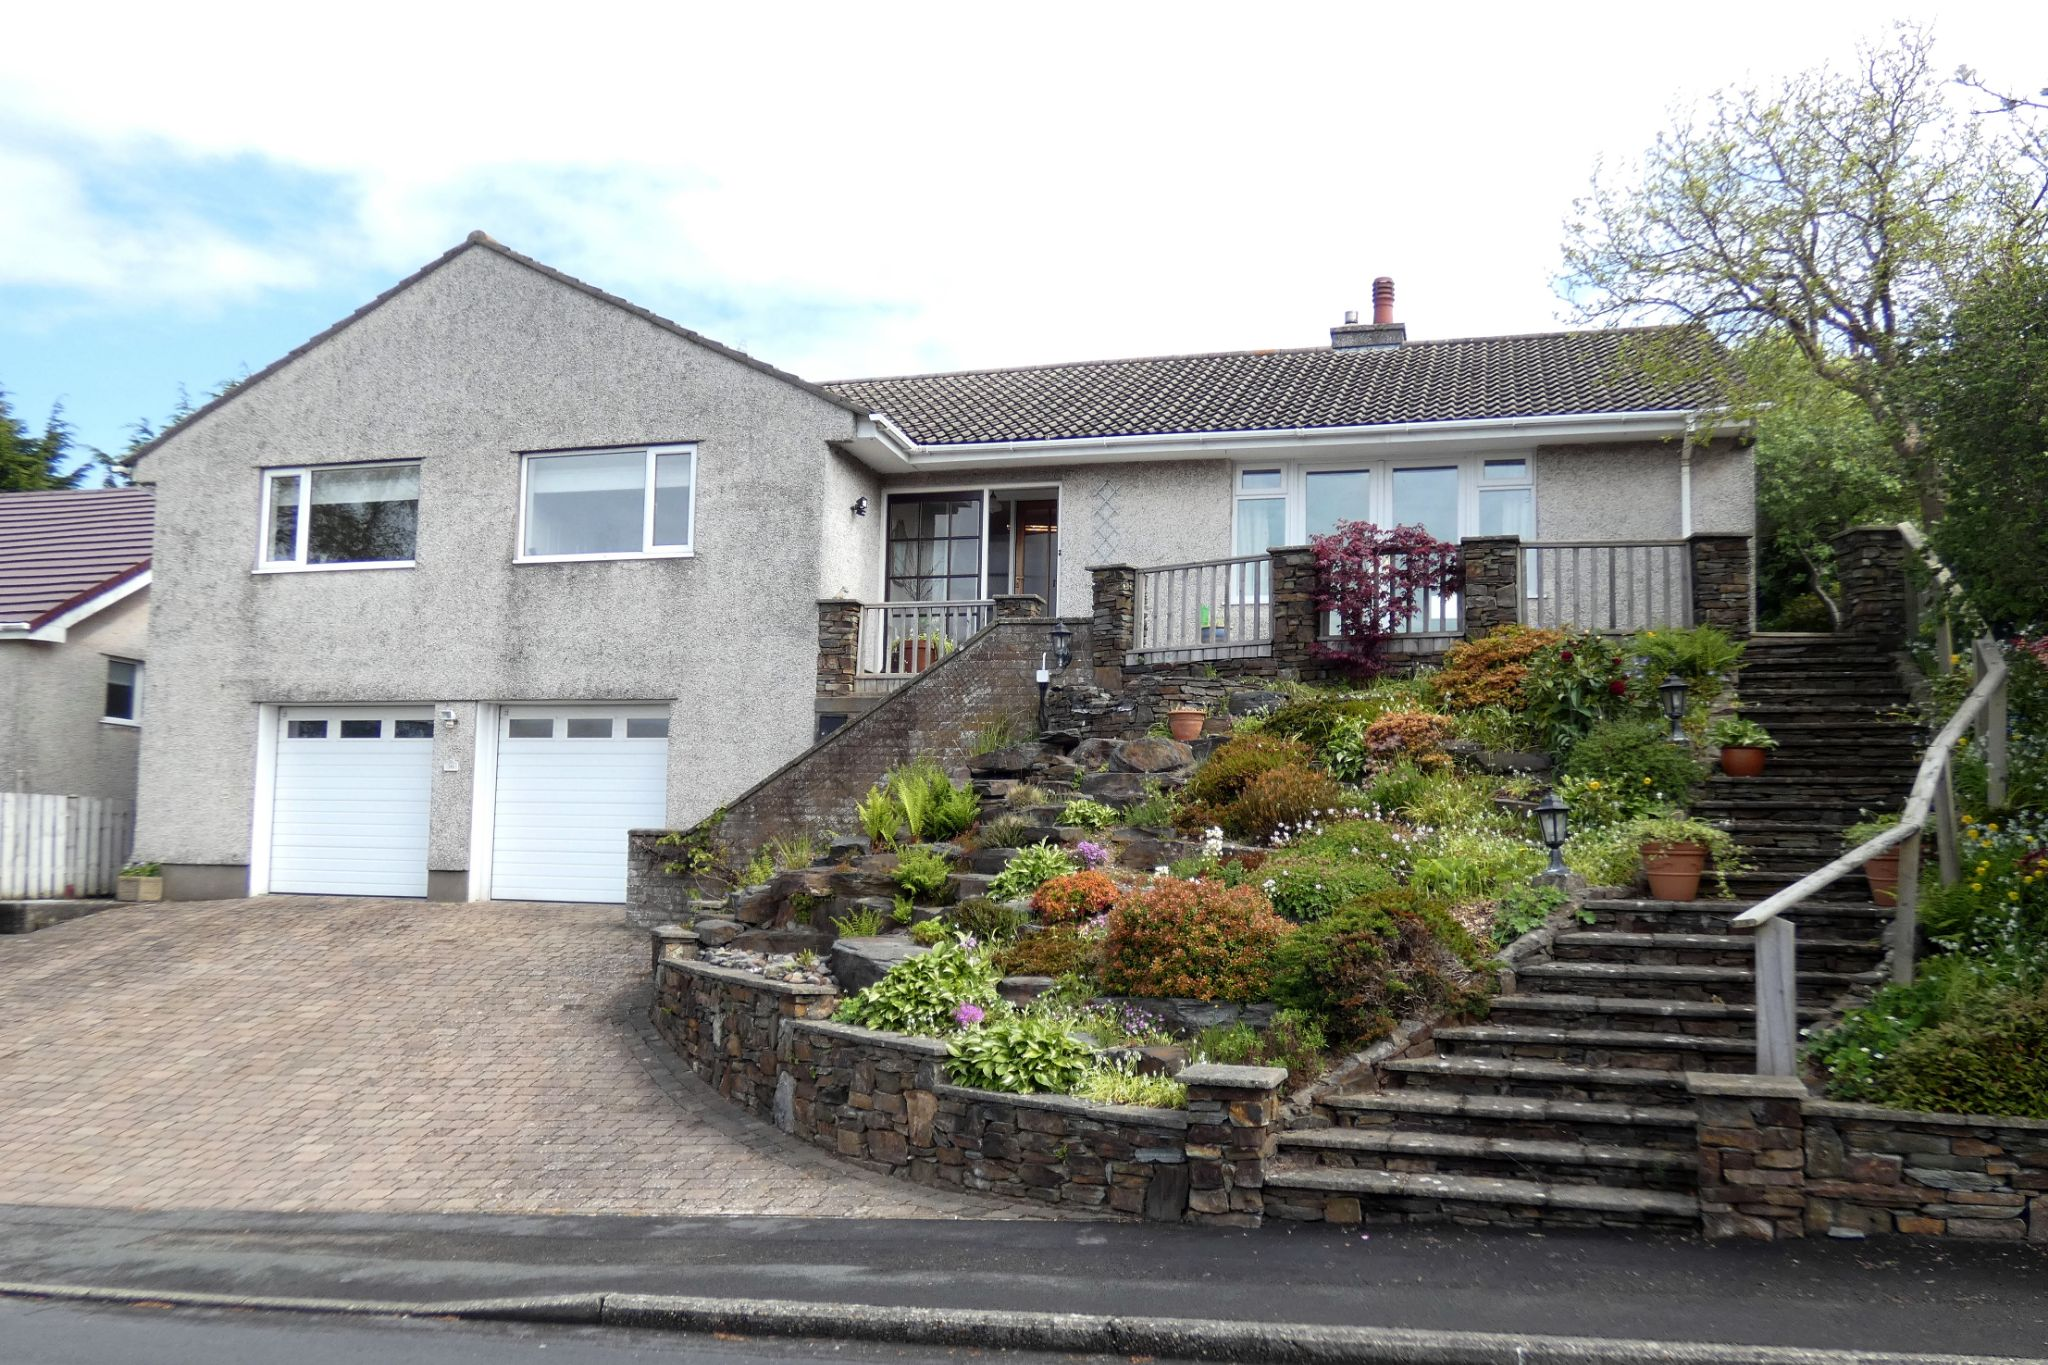 3 bedroom detached bungalow For Sale in Douglas - Photograph 1